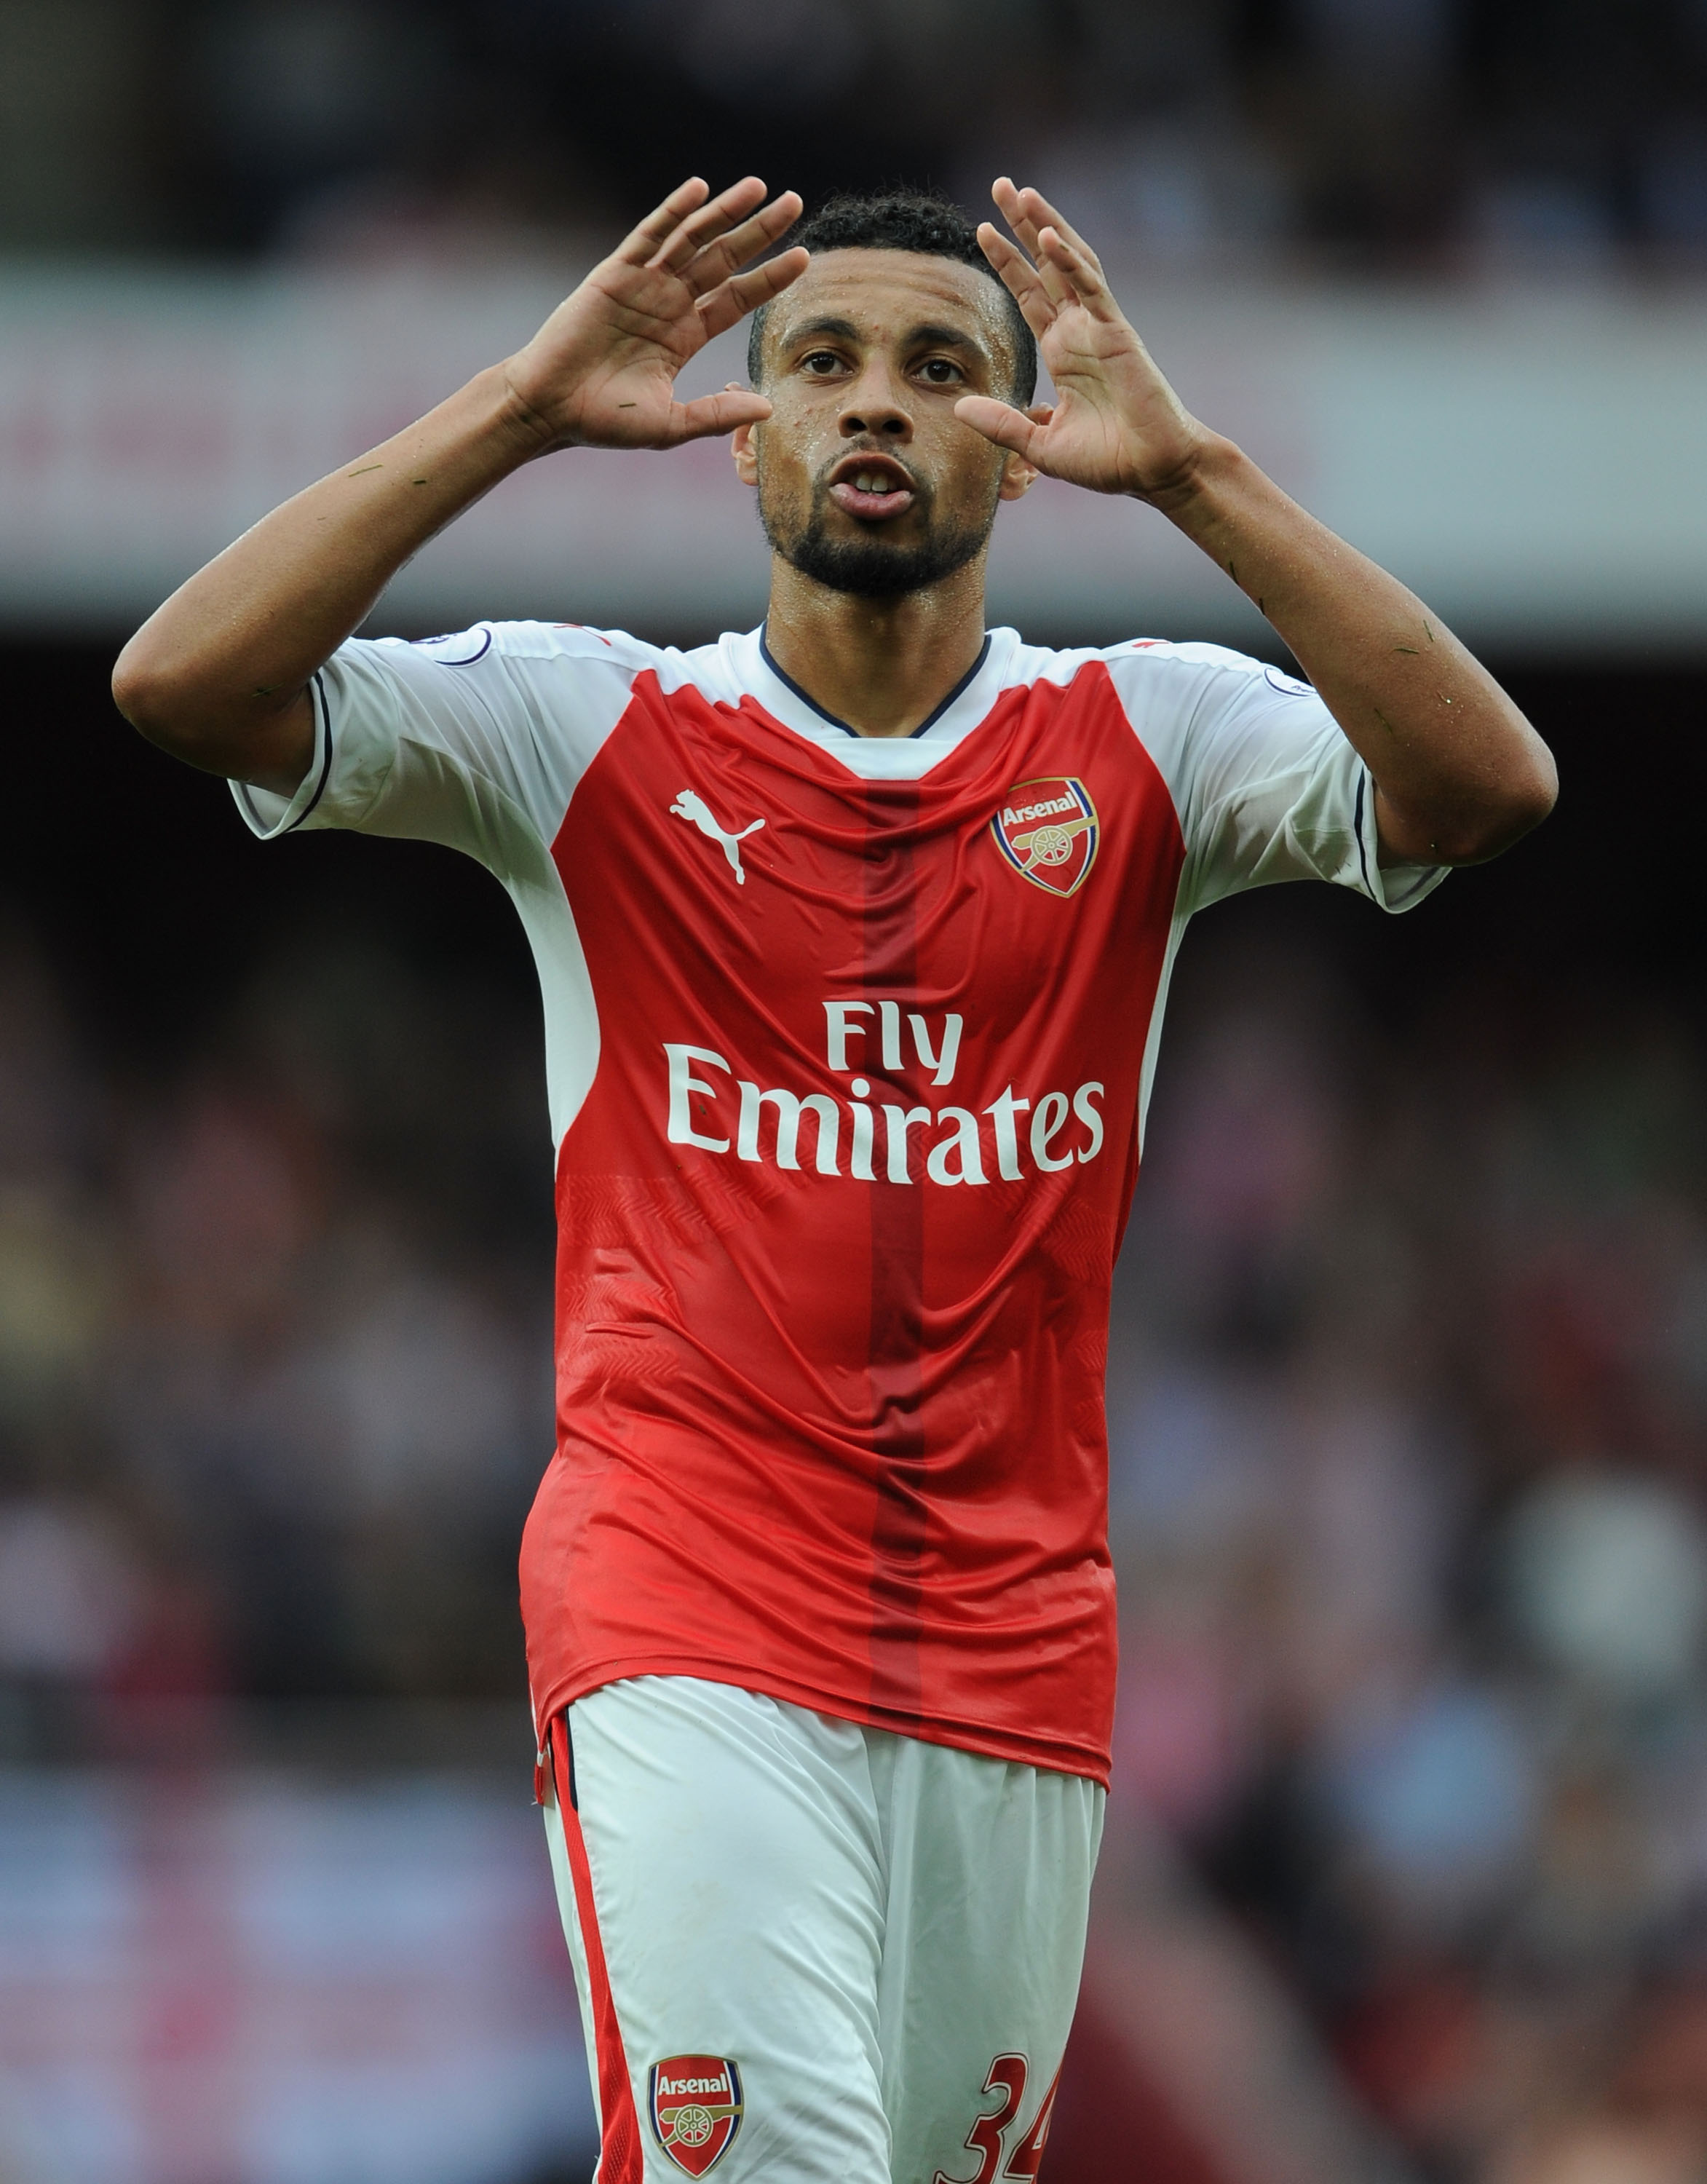 Arsenal: Francis Coquelin Showing Desperately Needed Signs